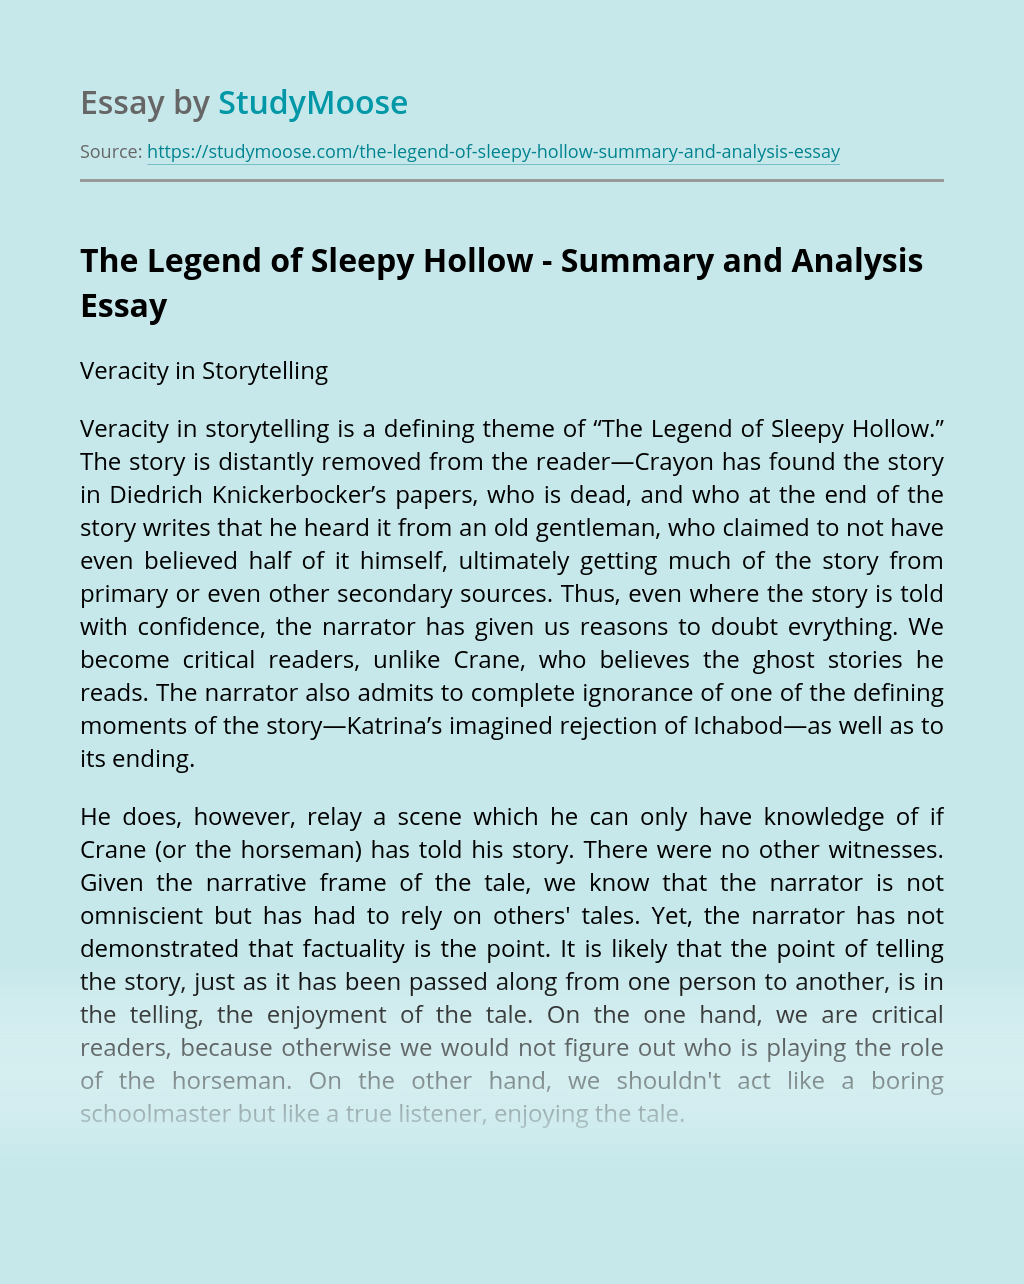 The Legend of Sleepy Hollow - Summary and Analysis